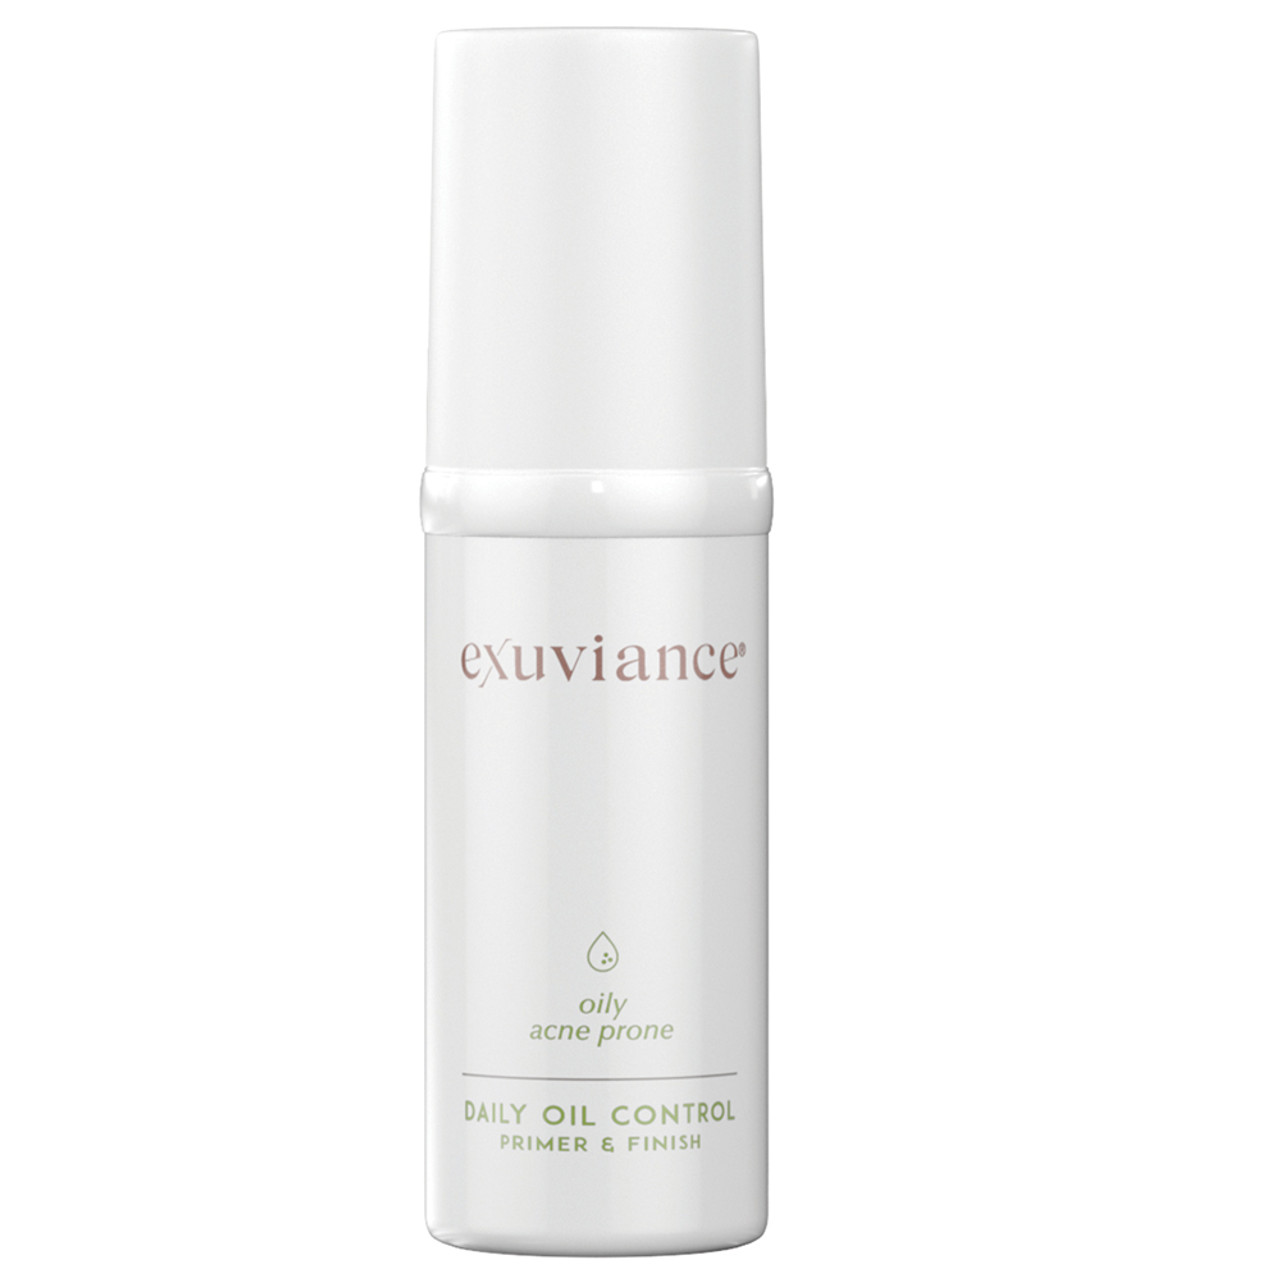 Exuviance Daily Oil Control Primer & Finish BeautifiedYou.com